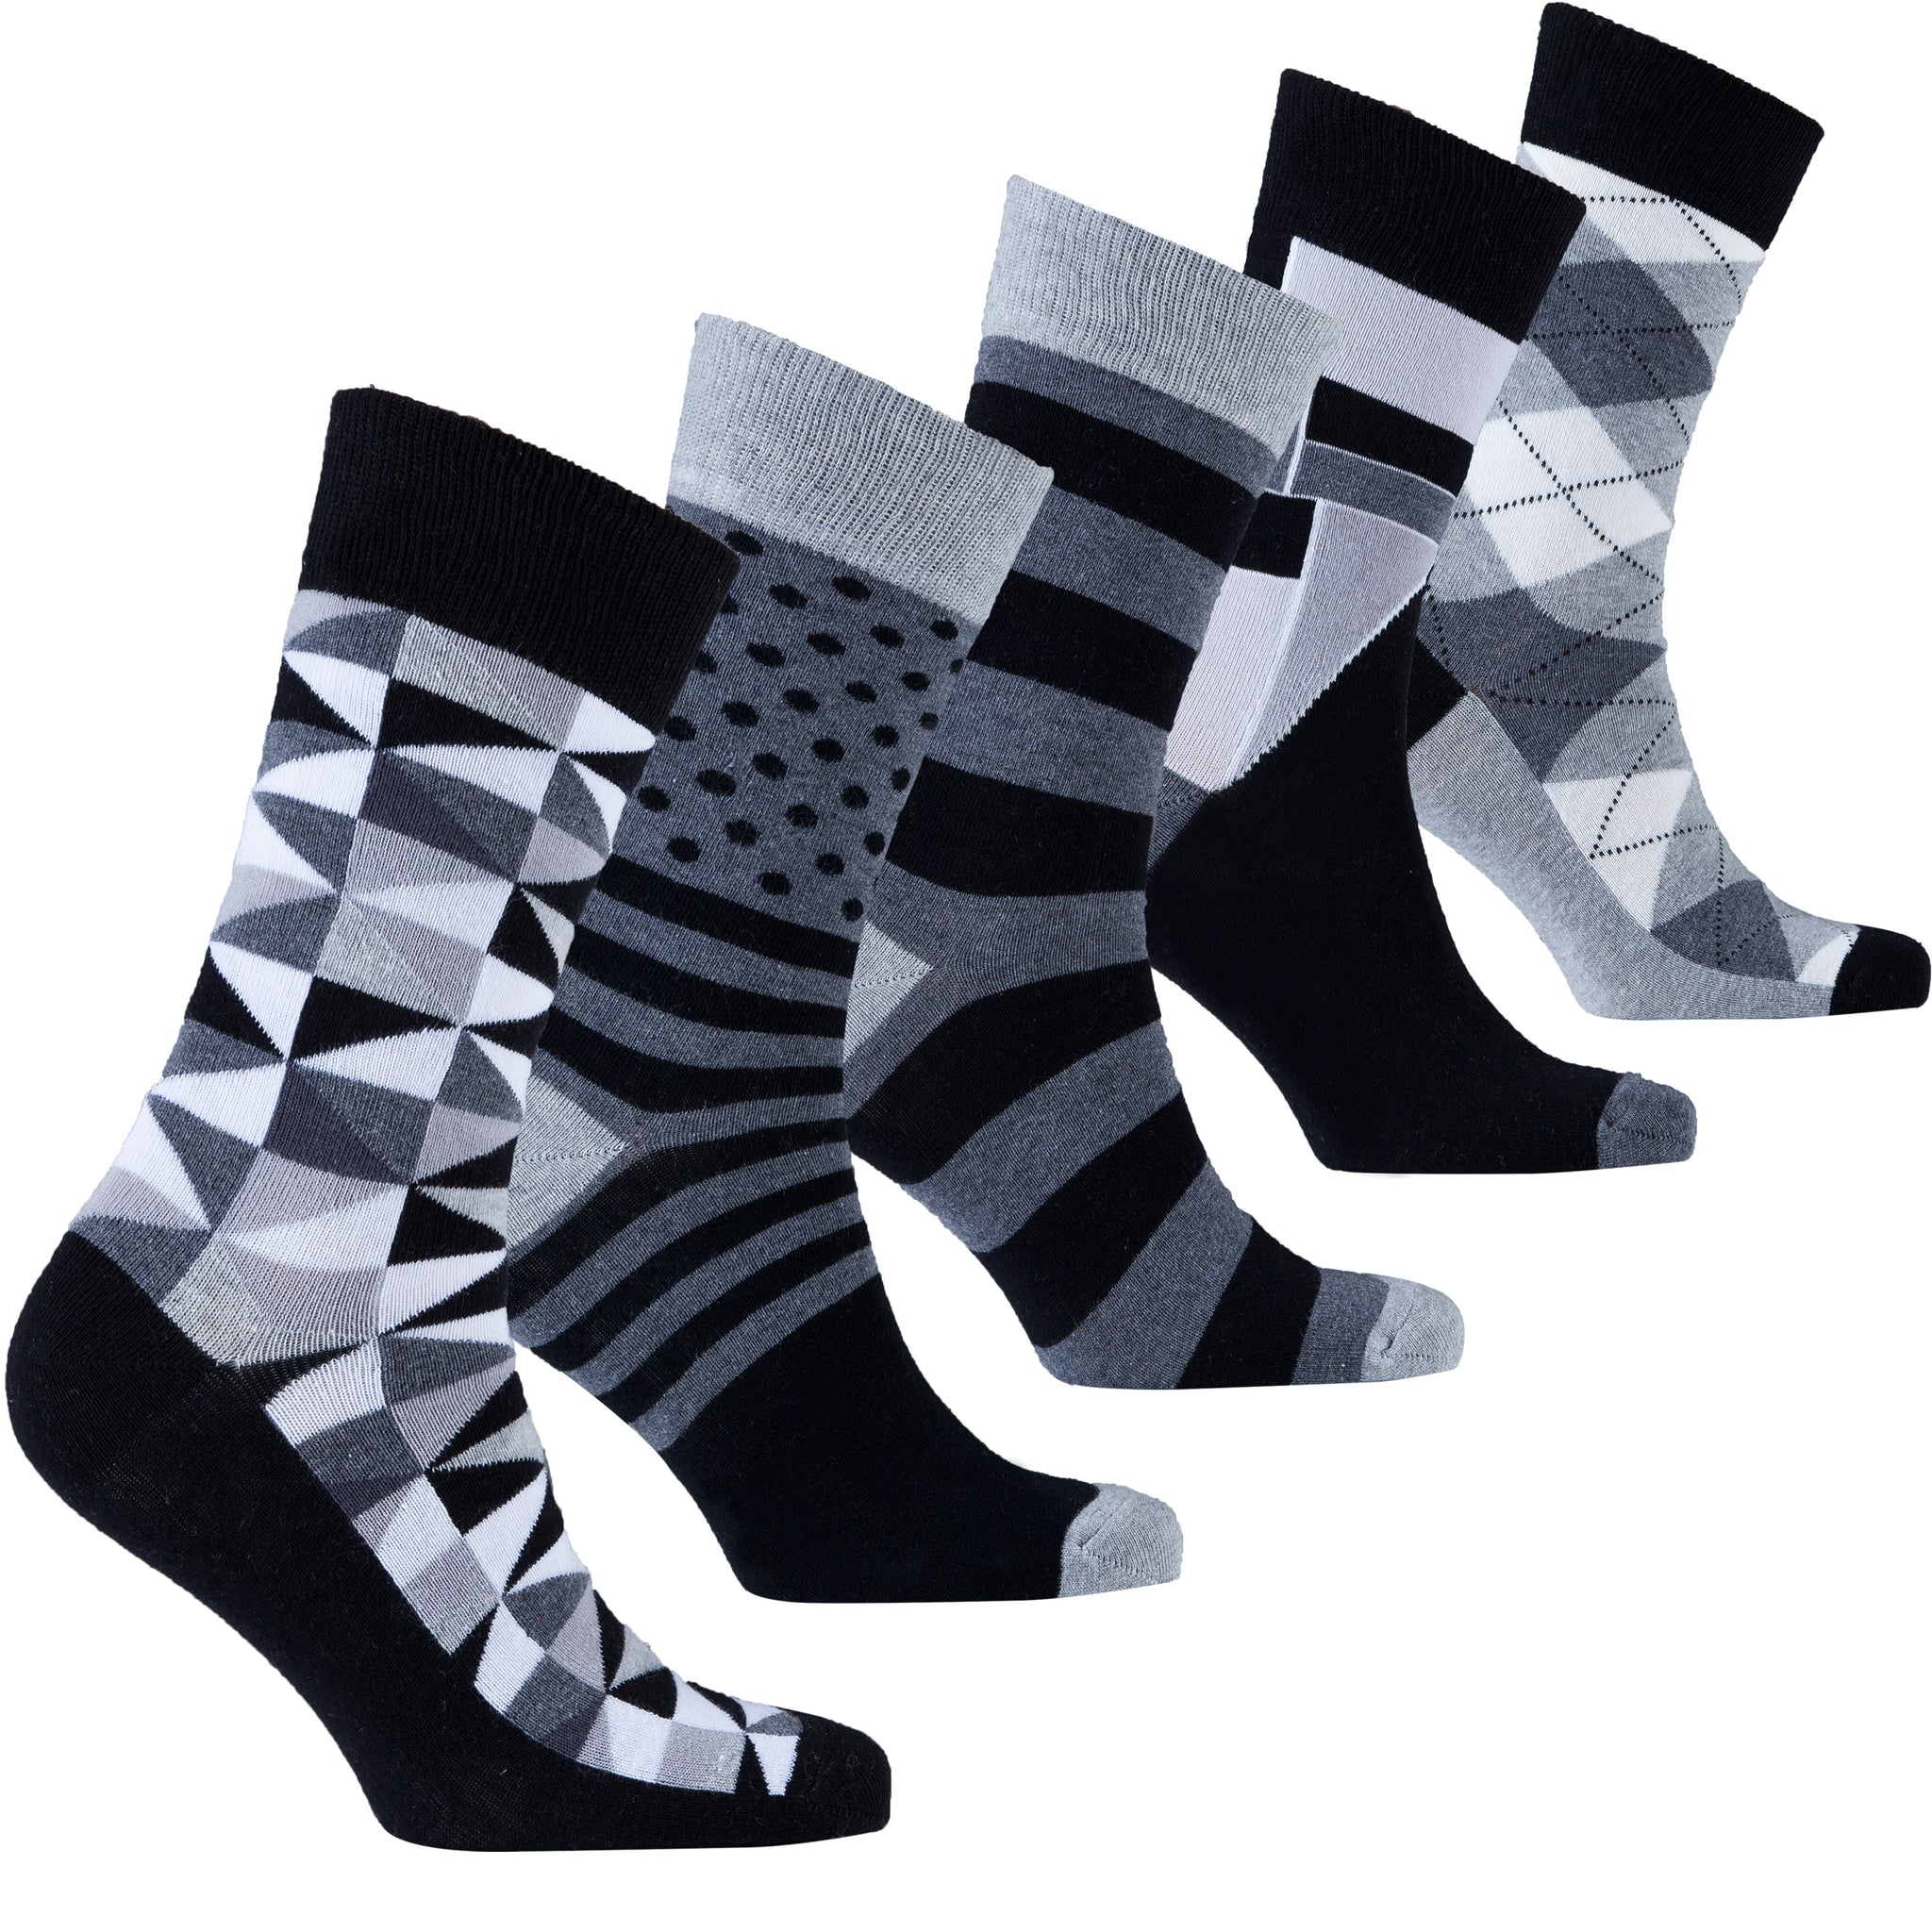 Men's Popular Mix Set Socks